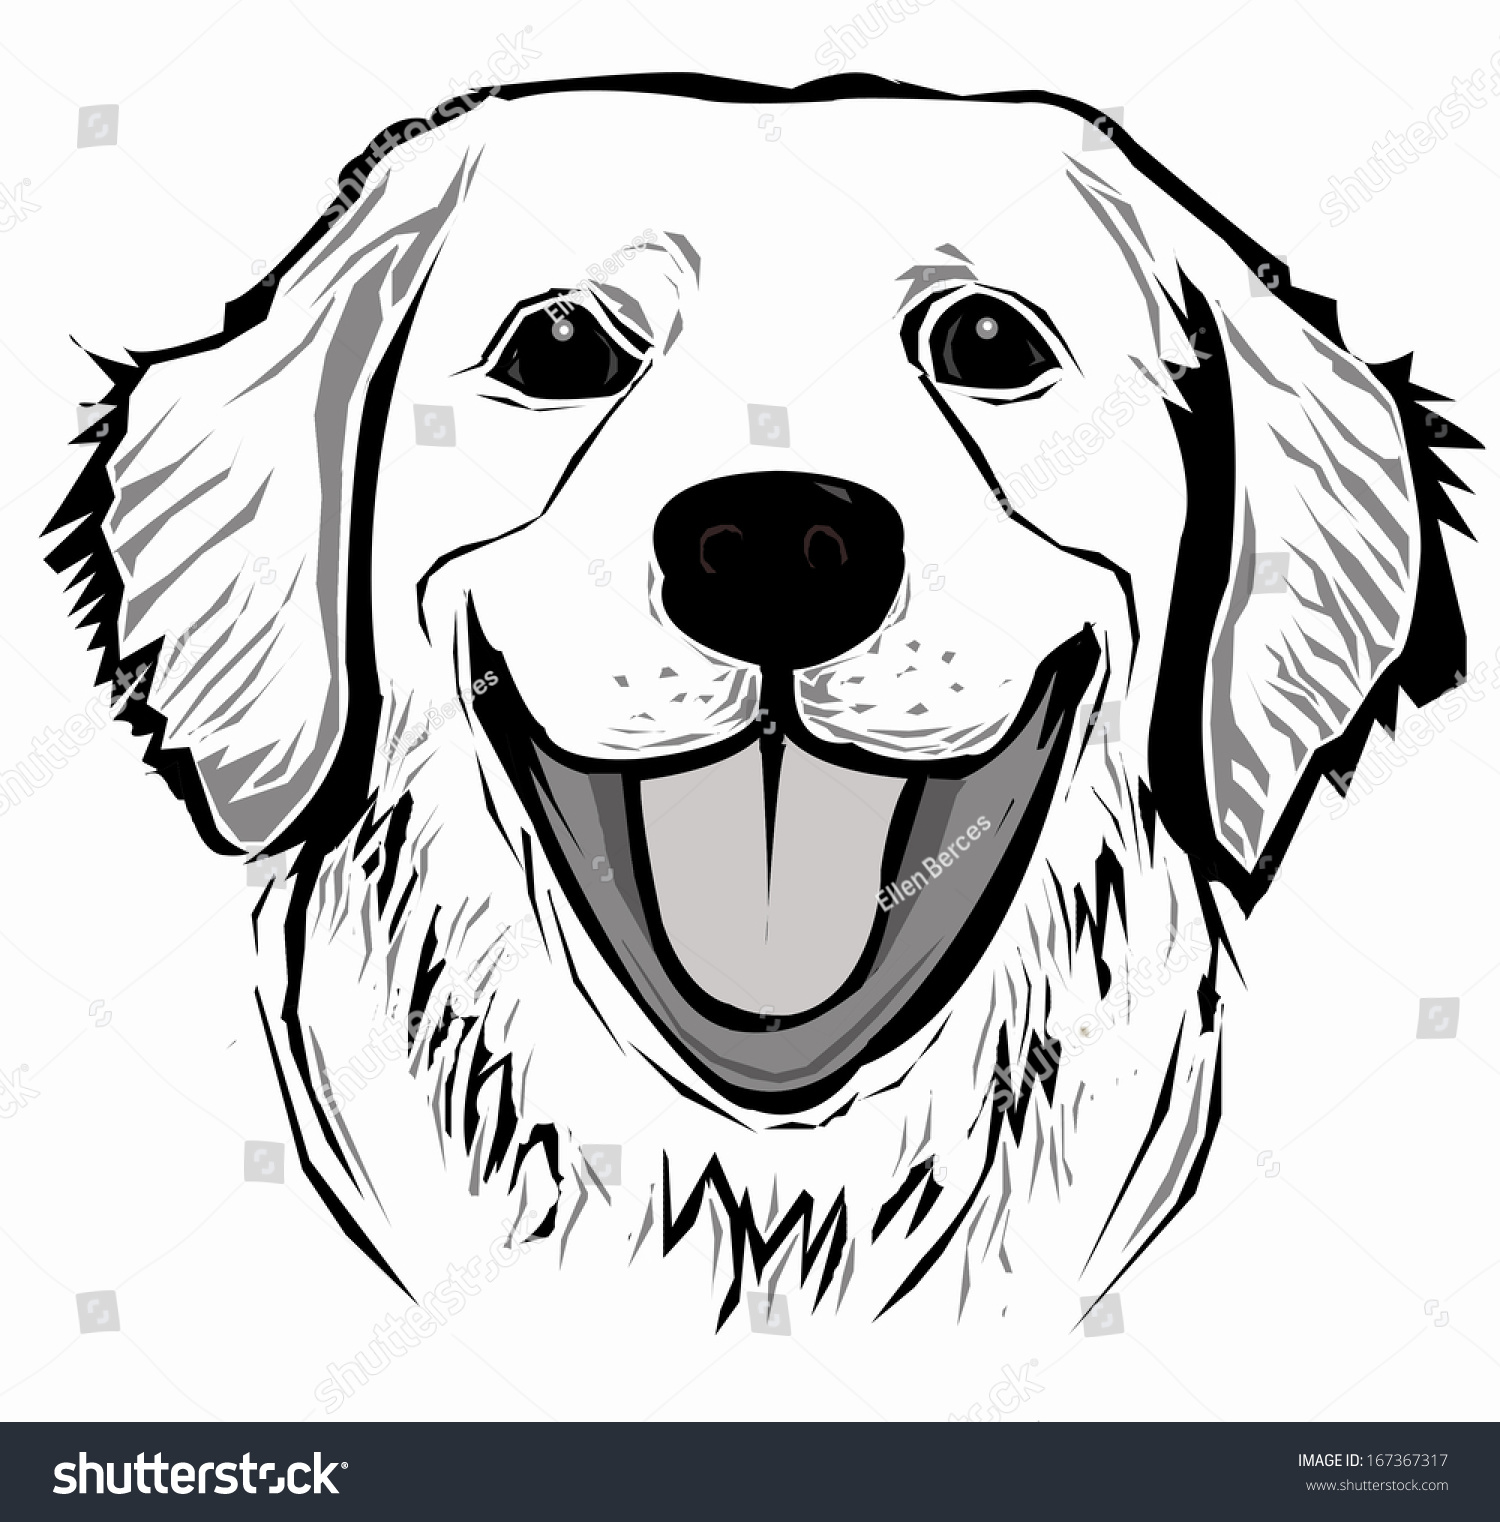 Line Drawing Of A Dog Face : Dog face stock vector shutterstock